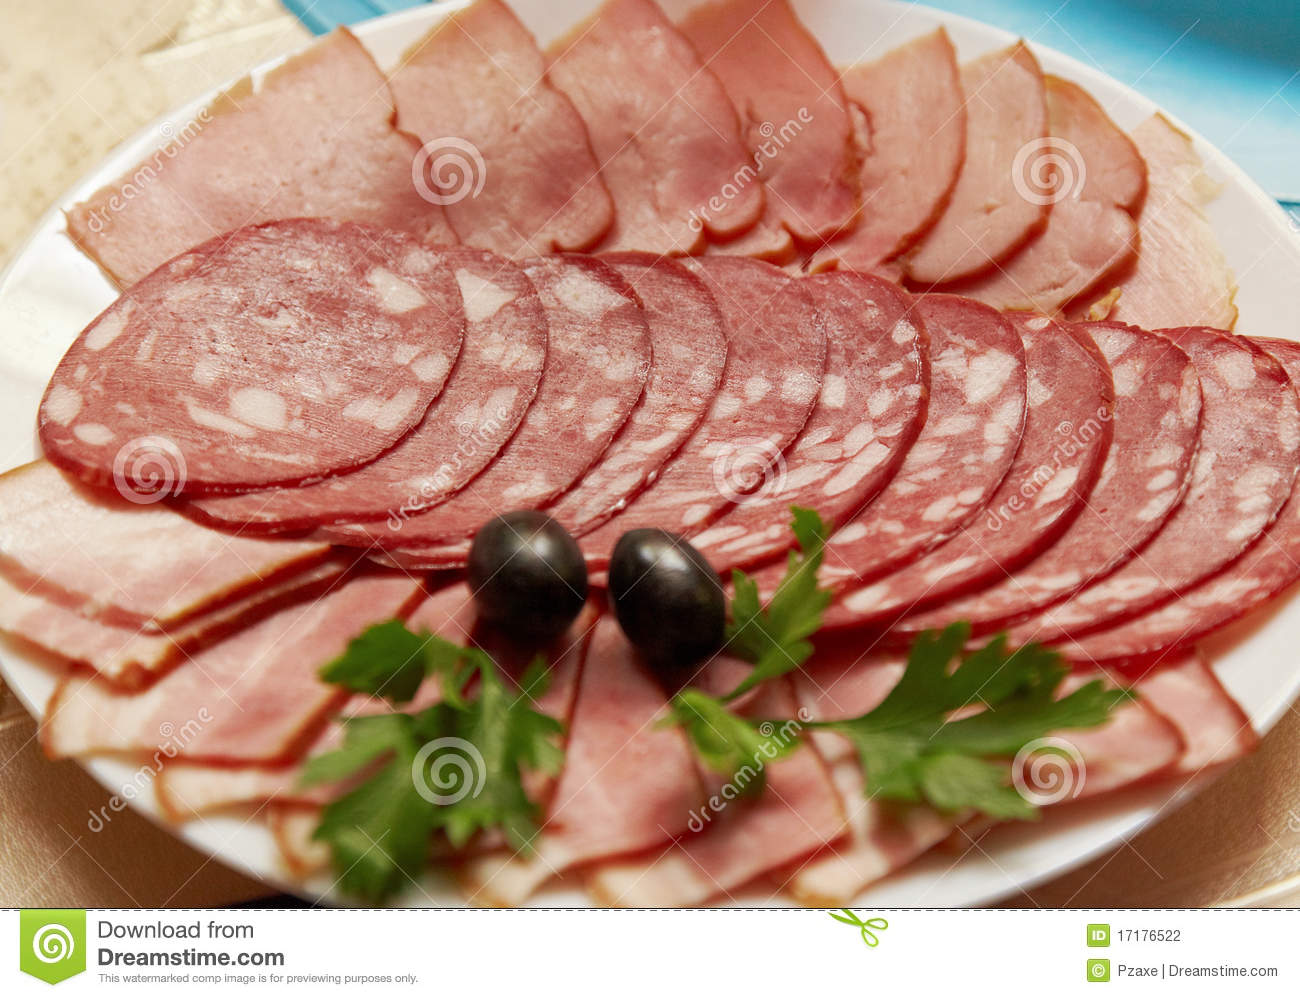 Ham And Sausage Served On Plate Stock Photo Image 17176522